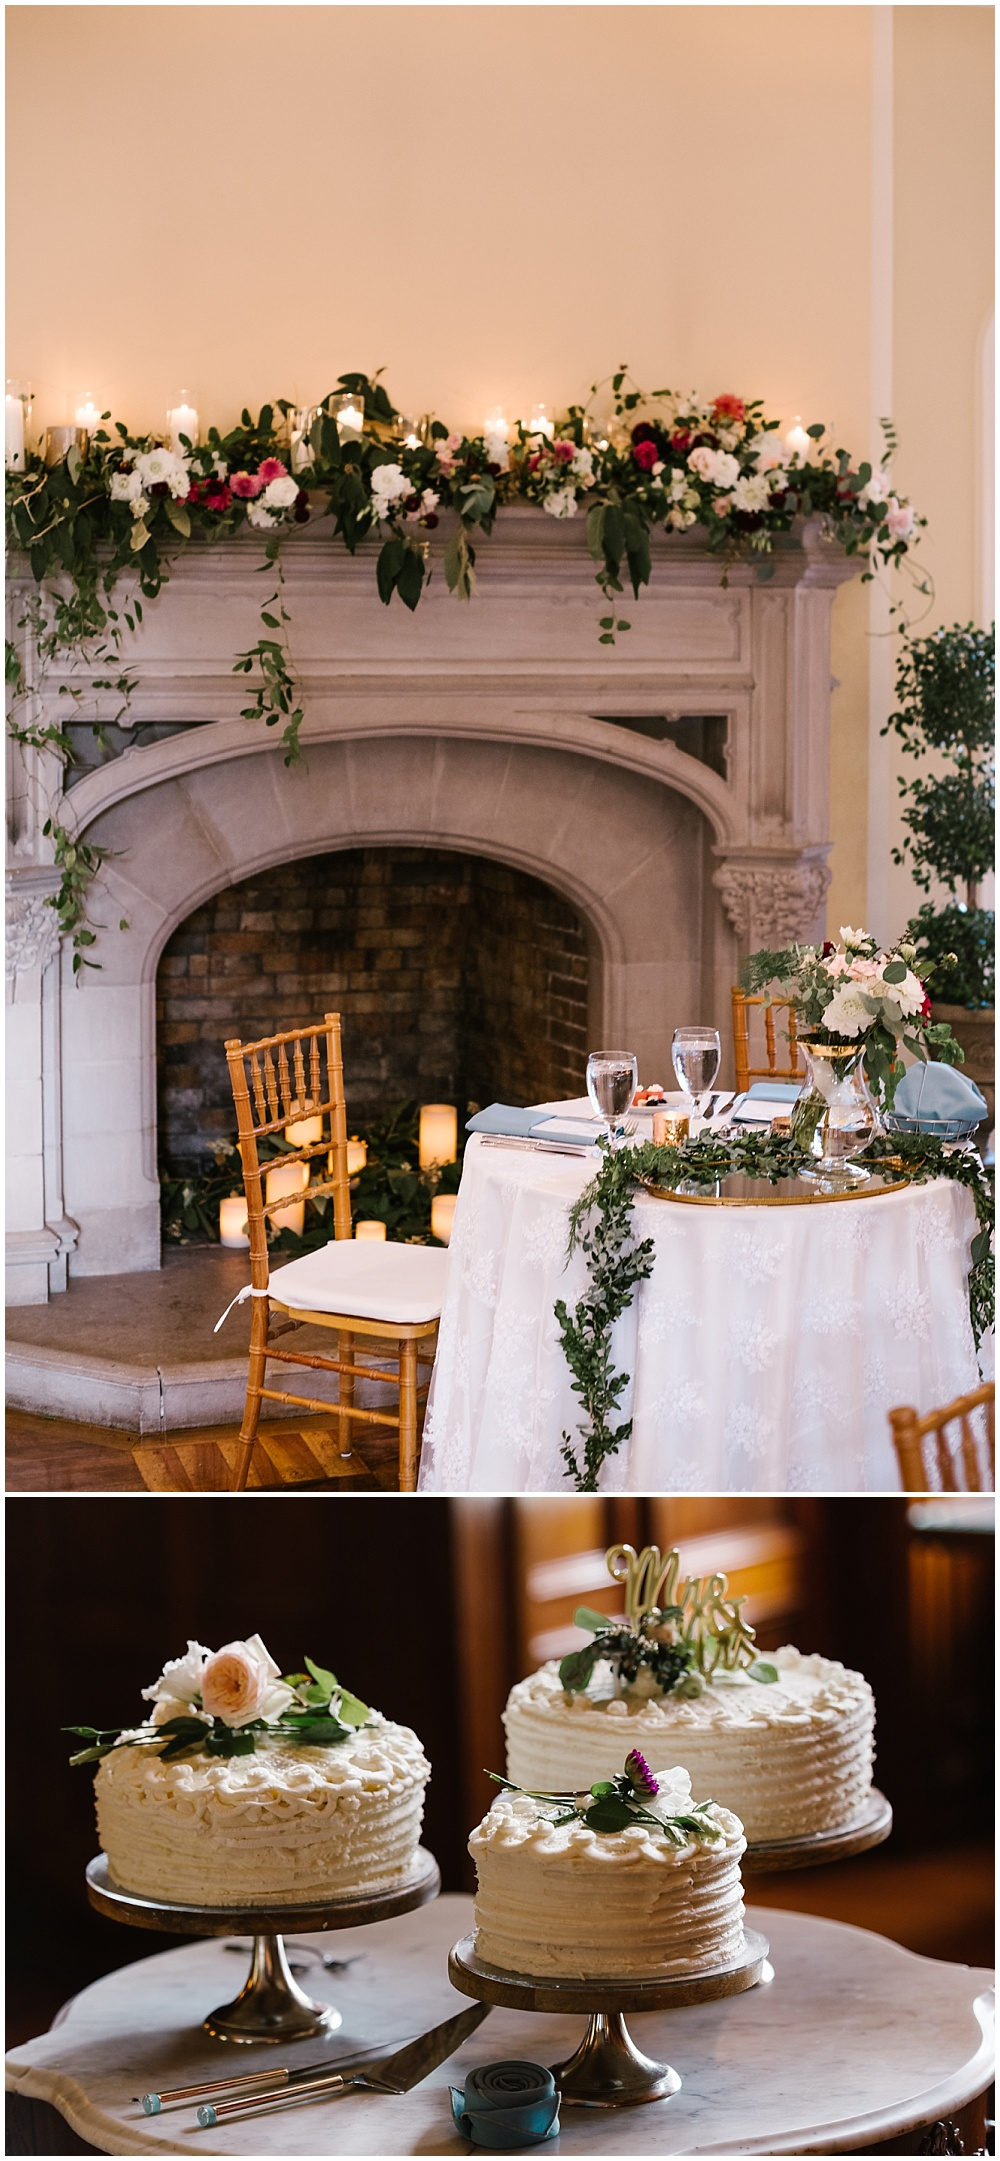 Trio of simple white buttercream wedding cakes atop a marble table and a simple sweetheart table with lush wedding flowers adorning the fireplace backdrop! Fall Indianapolis wedding at Laural Hall with a gorgeous fall wedding color palette and burgundy blooms | Jessica Dum Wedding Coordination